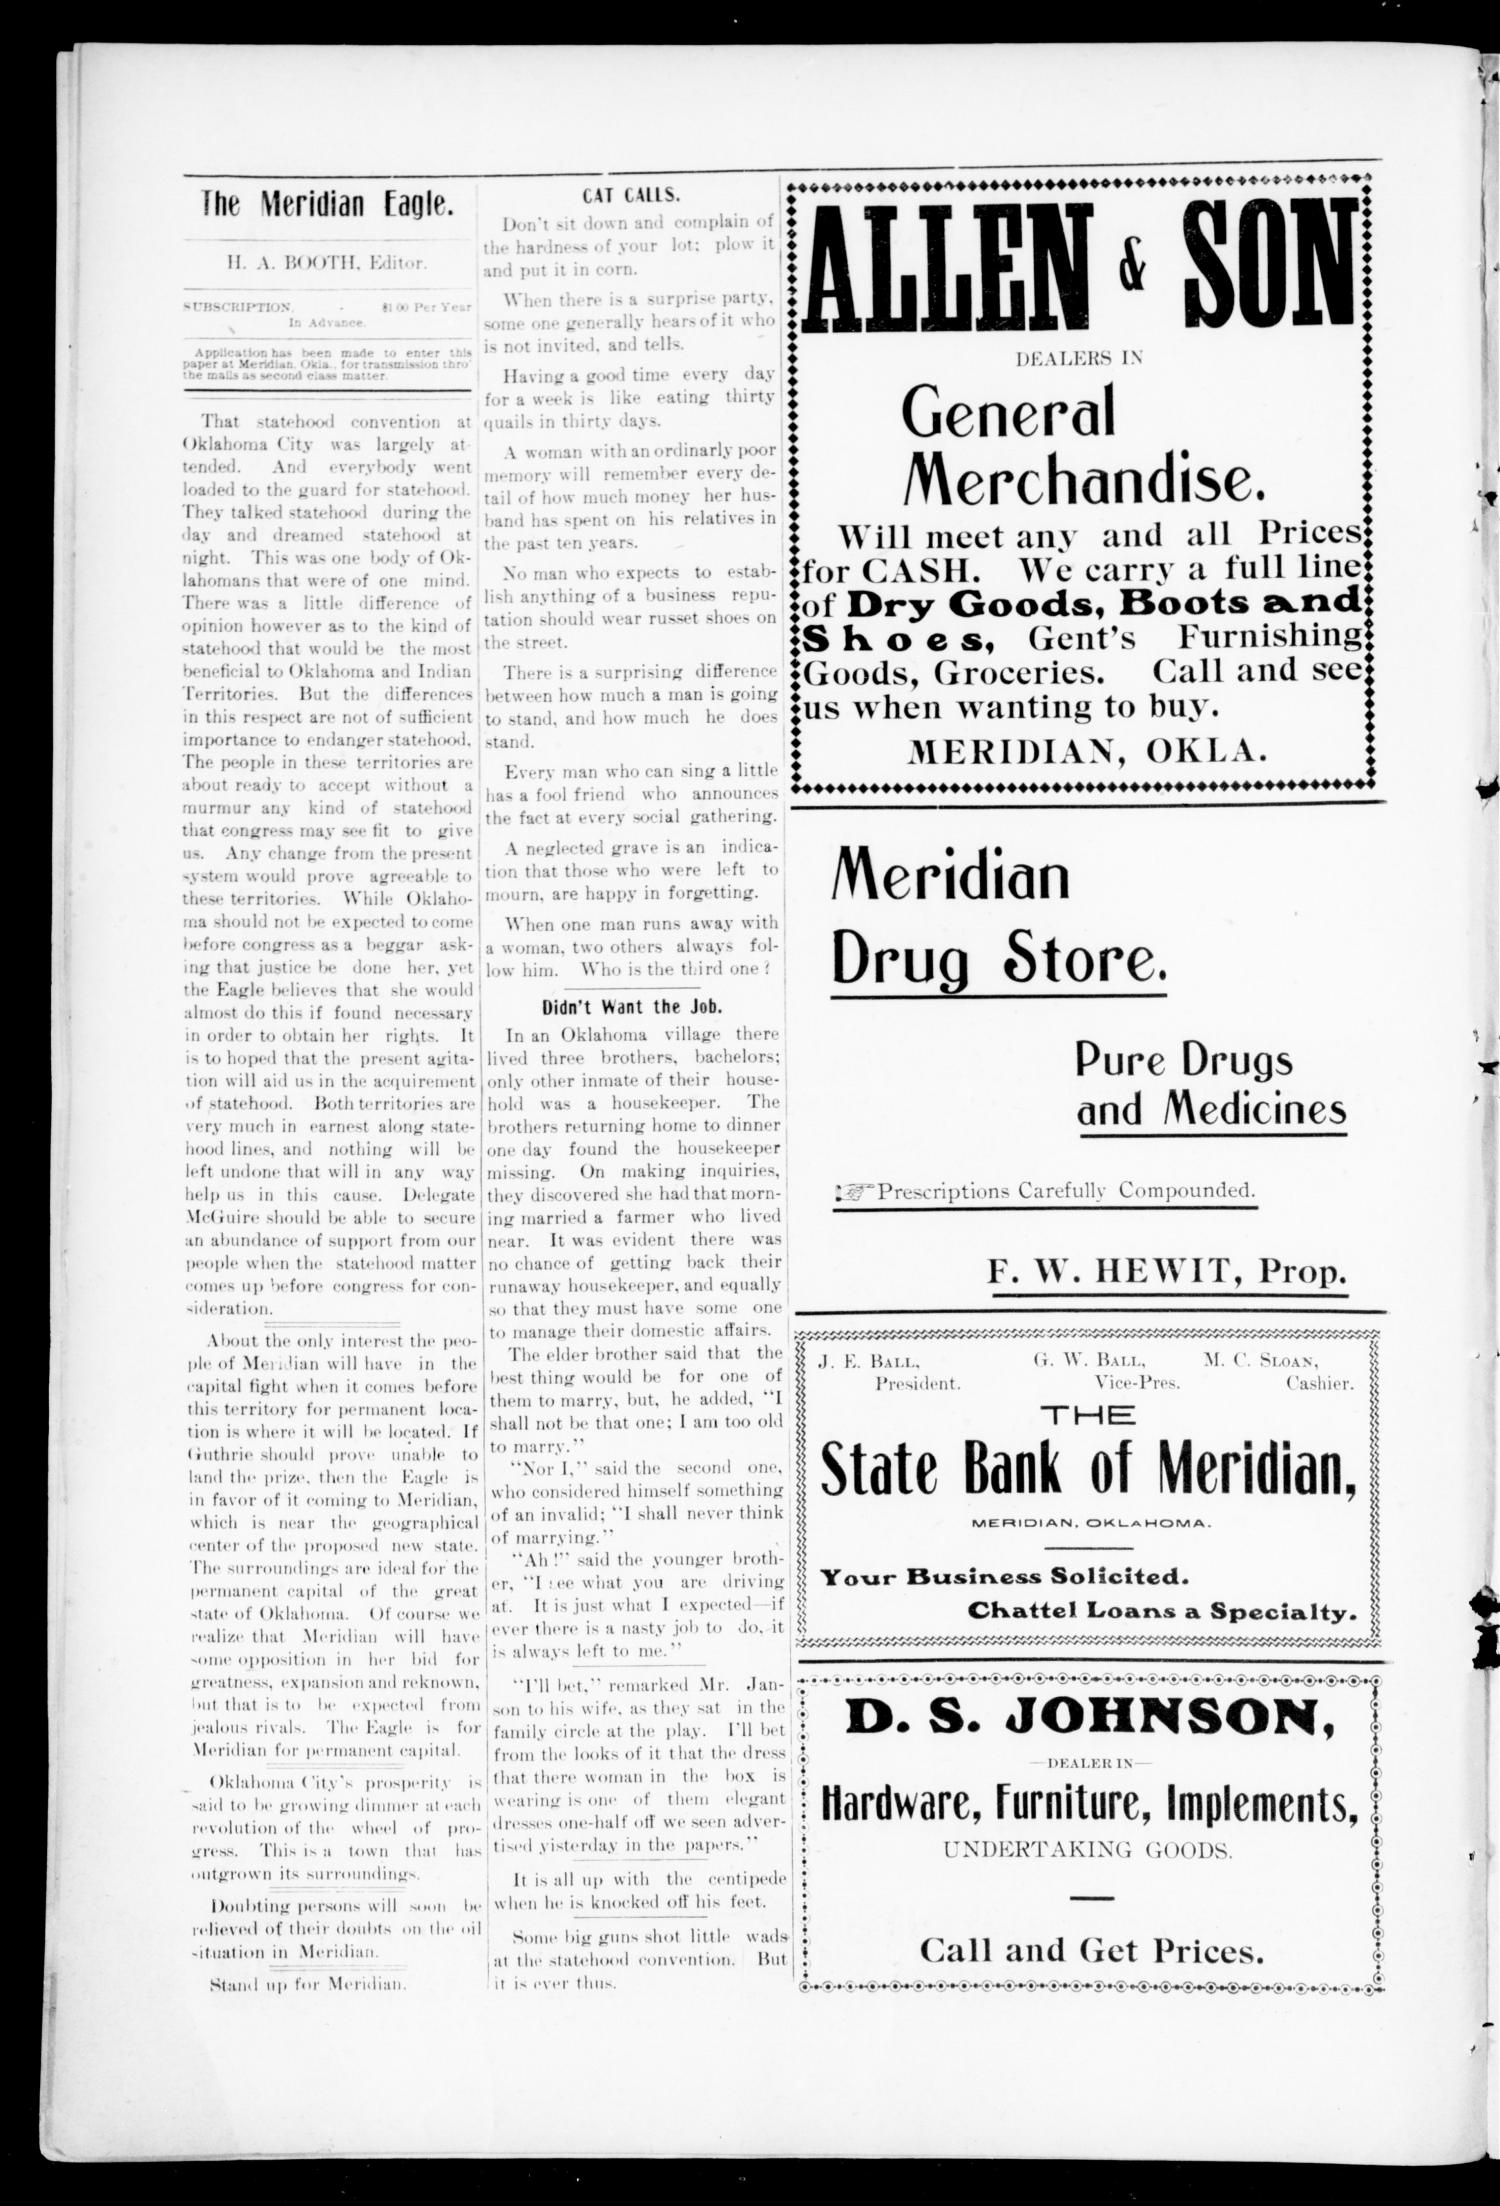 The Meridian Eagle. (Meridian, Okla.), Vol. 1, No. 7, Ed. 1 Saturday, July 15, 1905                                                                                                      [Sequence #]: 4 of 8